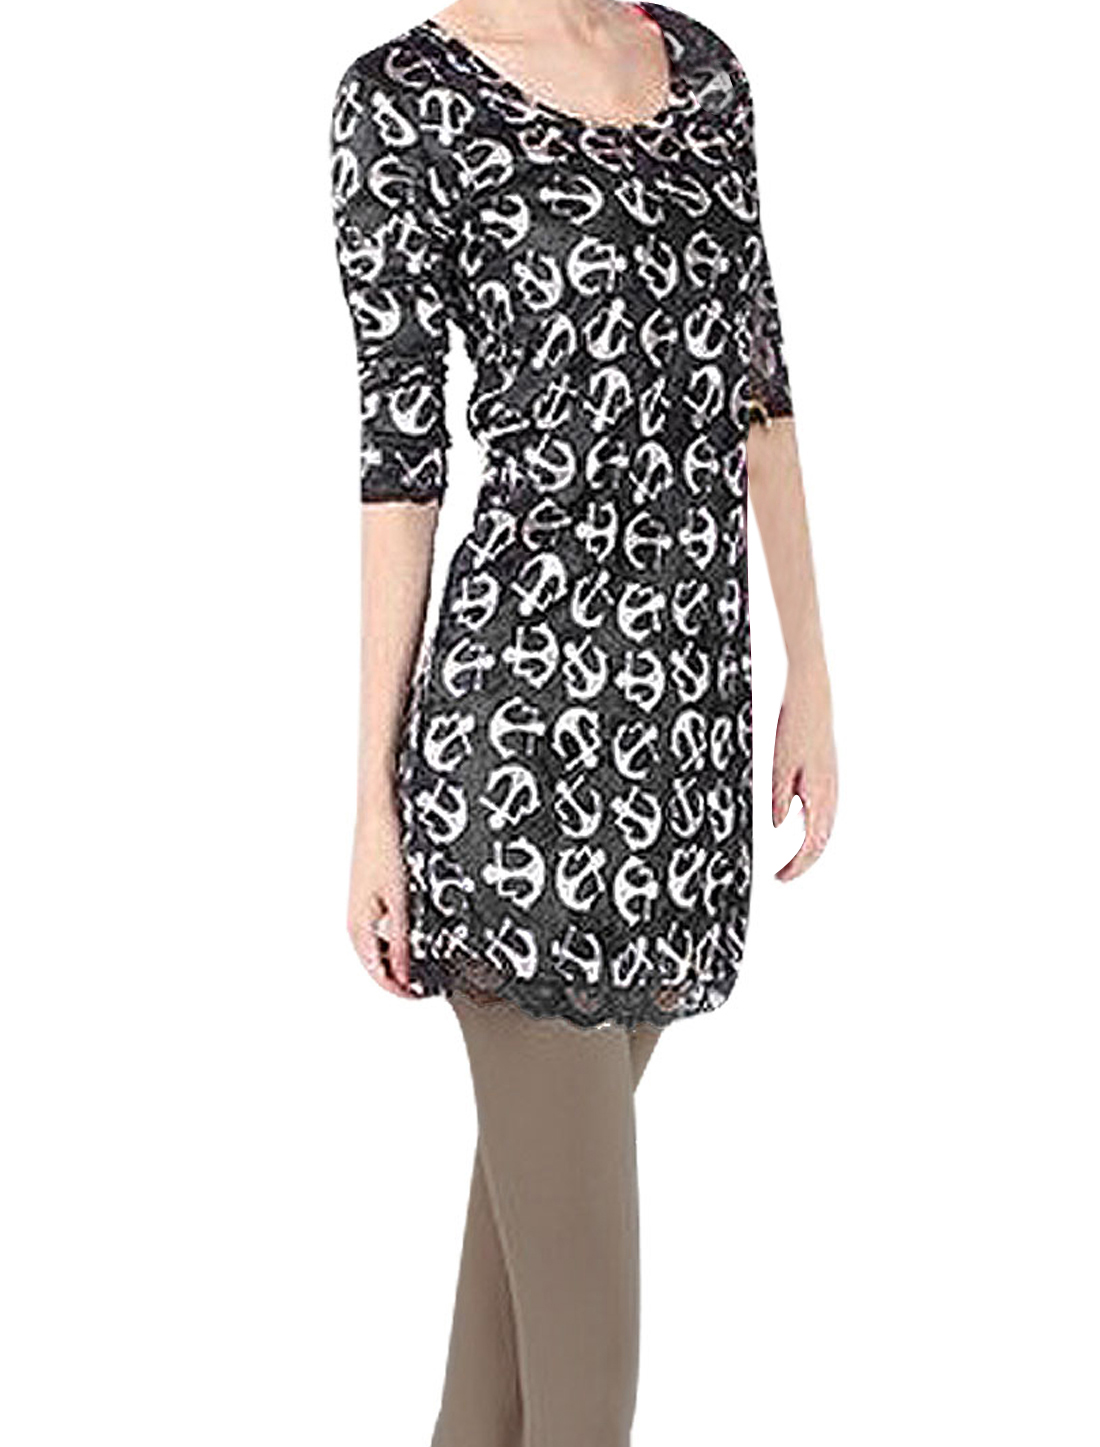 Woman White Axes Print Pullover aced Hem Formfitting Tunic T-shirt Black XS